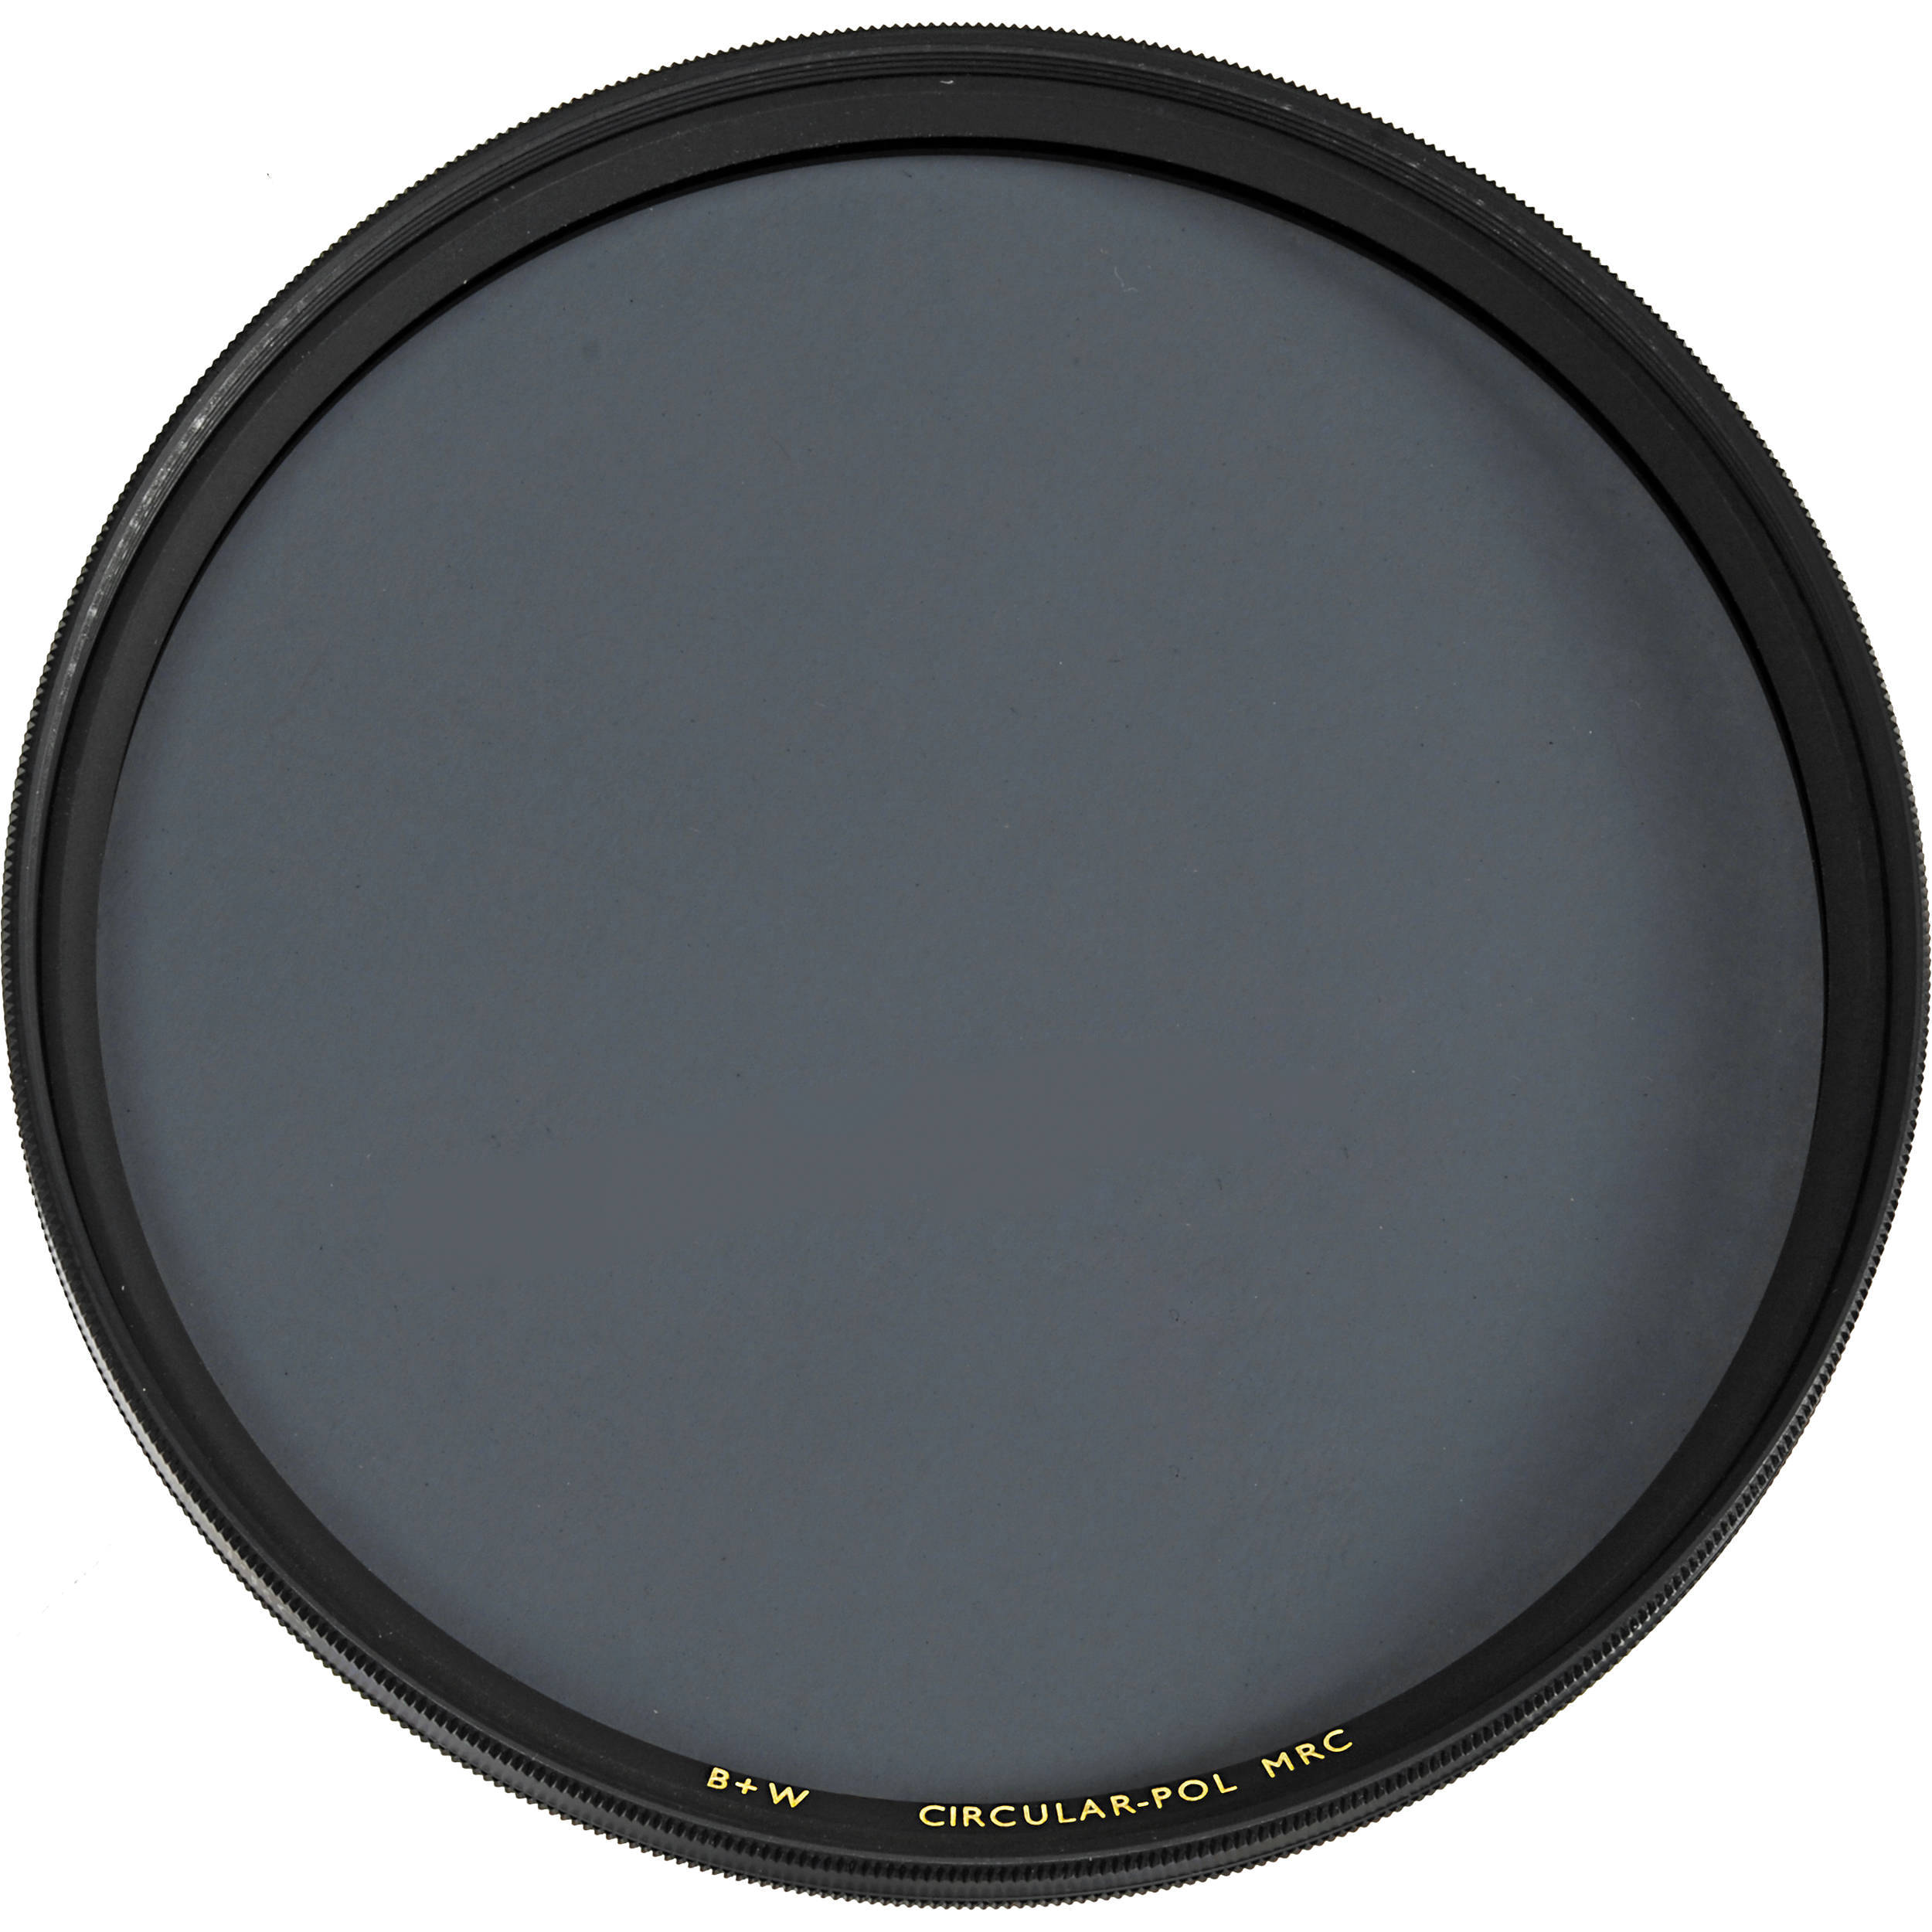 Filter 77mm cpl Filter Lens with Multi-Coating Glass and Aluminum Ring CPL 77mm Circular Polarizing